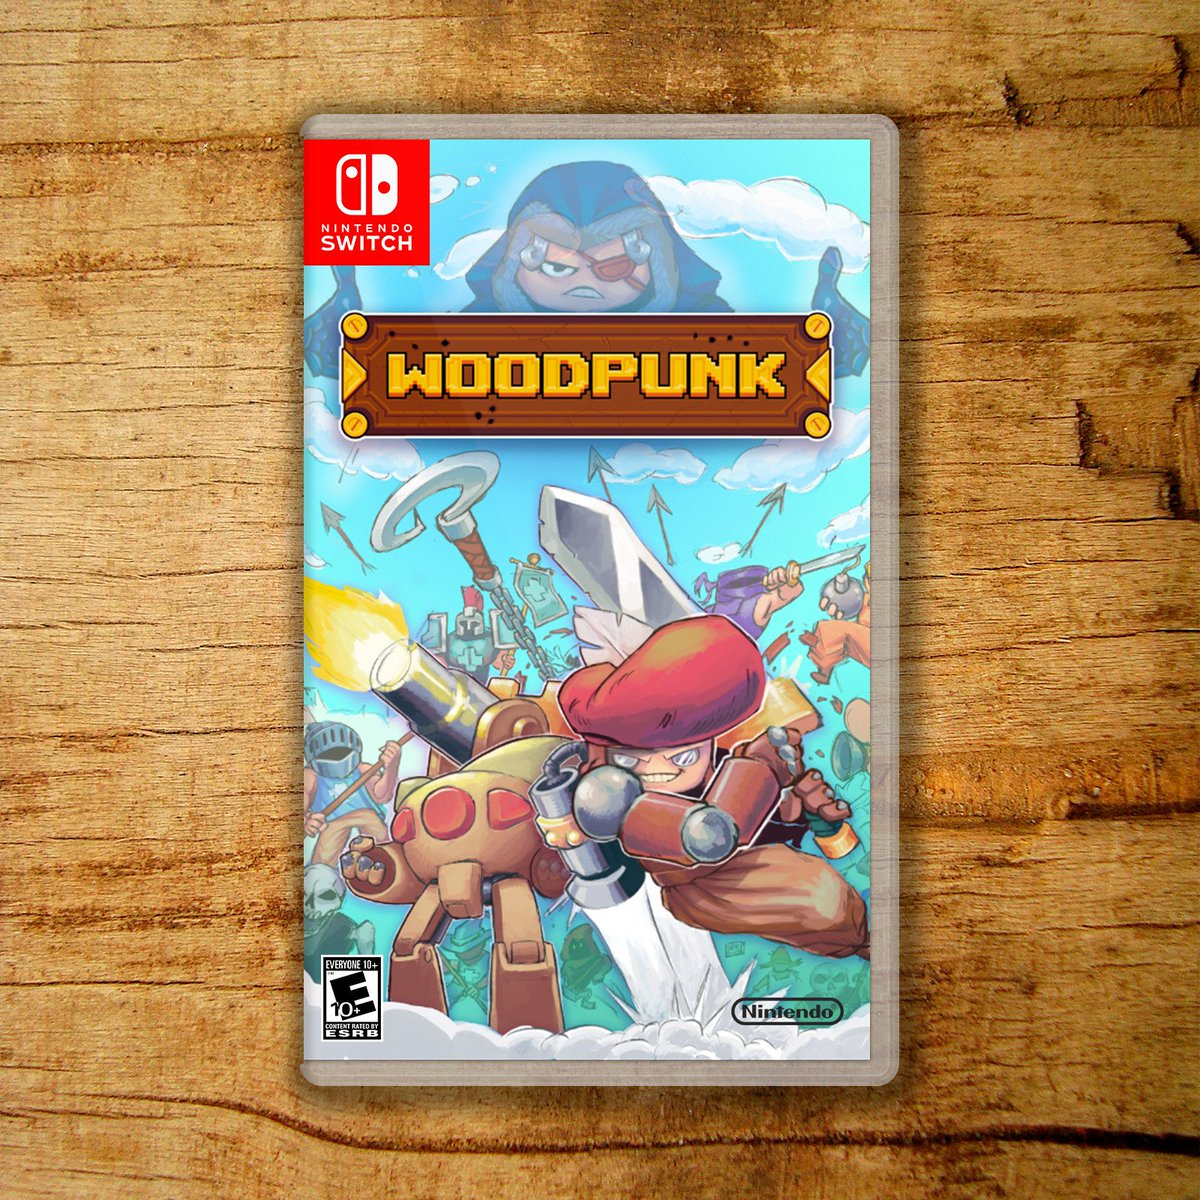 That&#39;s how #woodpunk for #NintendoSwitch would look like. Just a #concept? Stay tuned ;)  #indiedev #indiegame #gamedev #IndieGameDev #gaming #gameart #videogames #videojuegos #indiegames #gamersunite #RETROGAMING #pixelart #WorldMusicDay #FelizJueves <br>http://pic.twitter.com/FsxIHPchgD